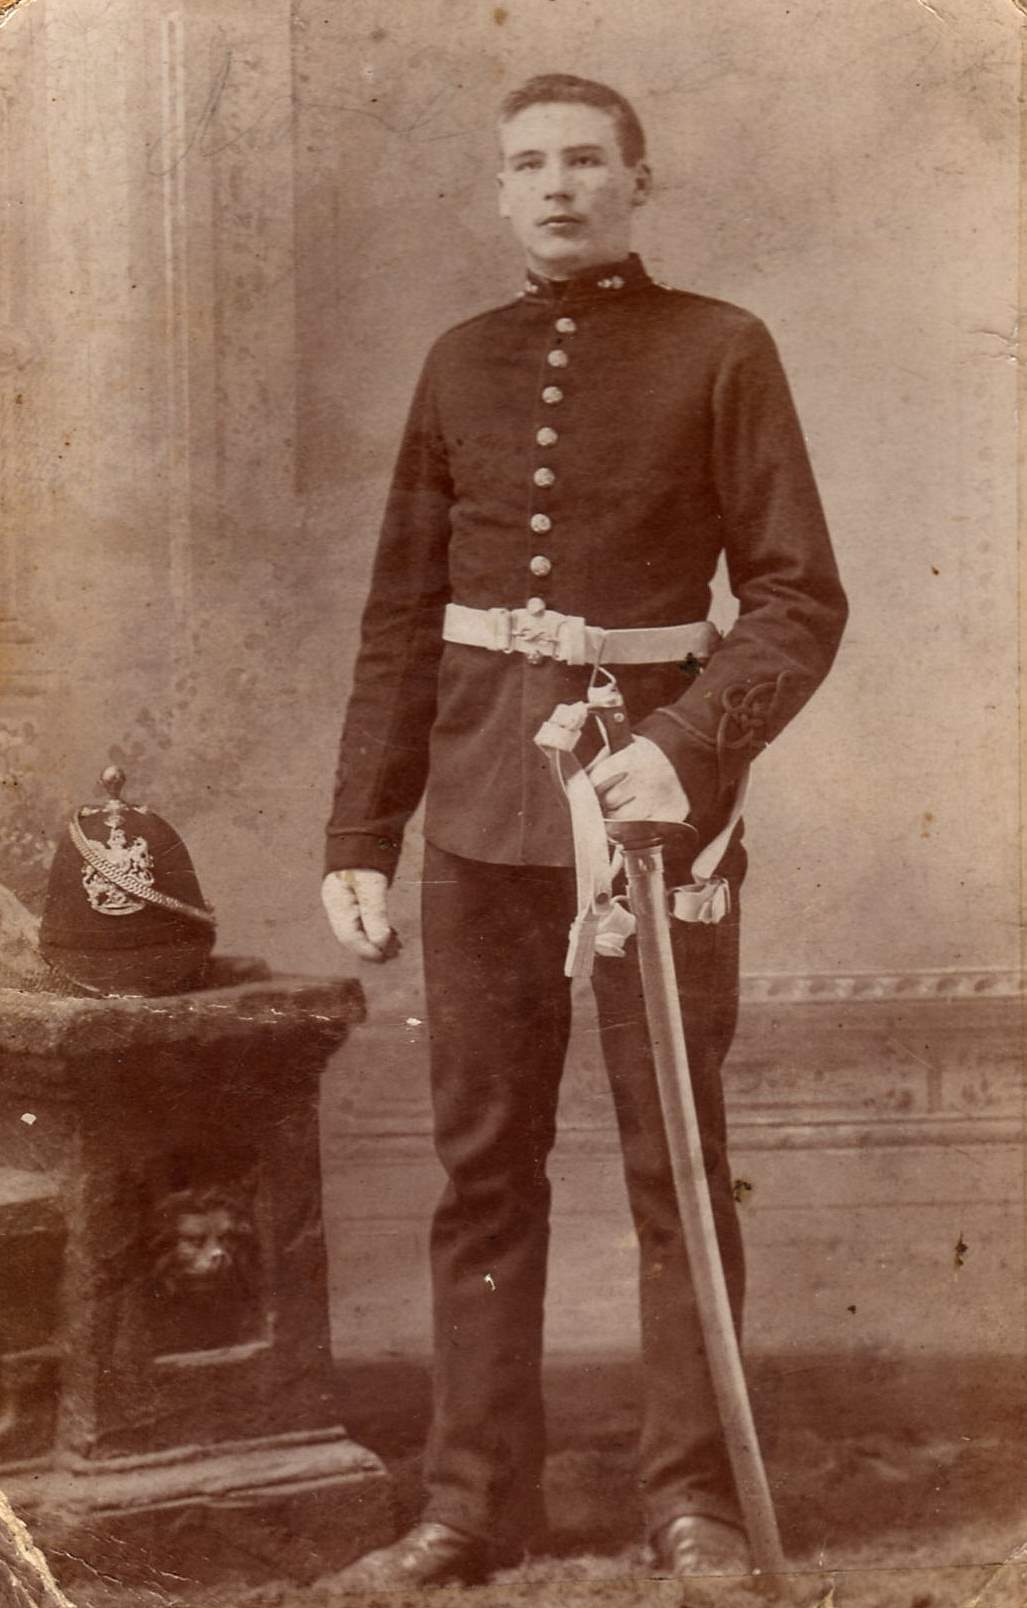 Arthur Jackson in uniform